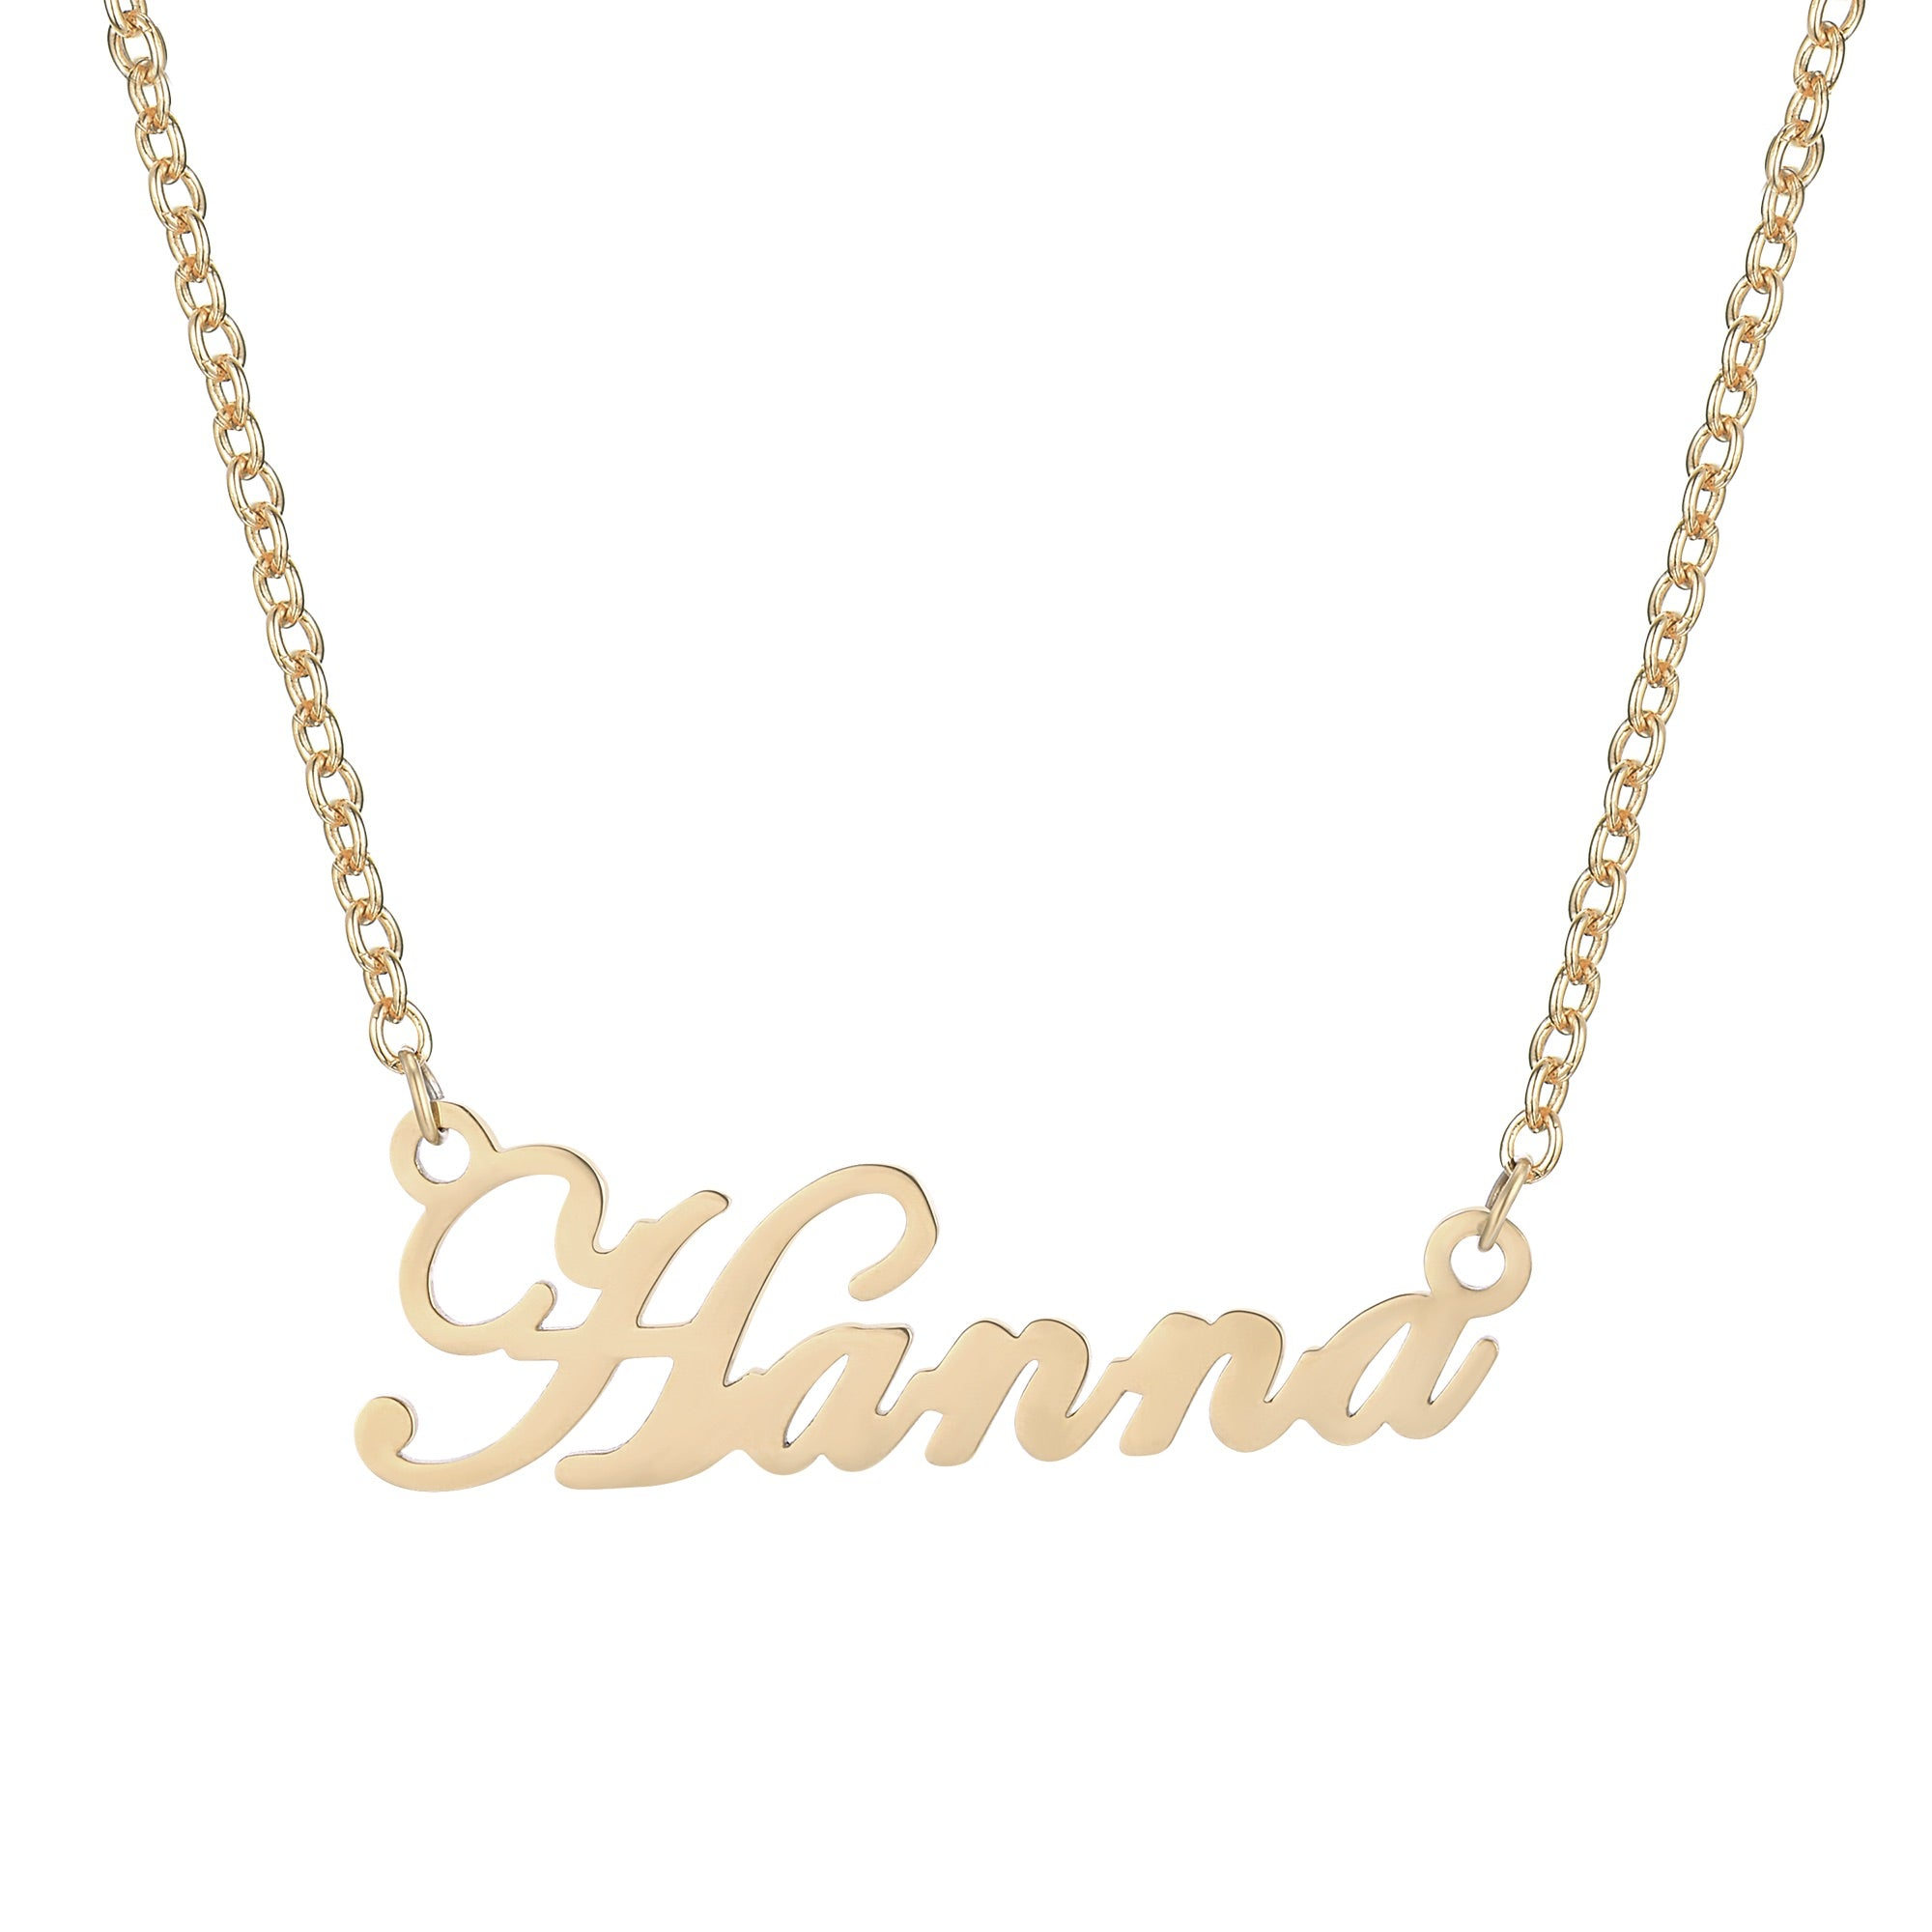 gold jewellery name personalized pe necklace necklaces silver ineffabless sterling hot